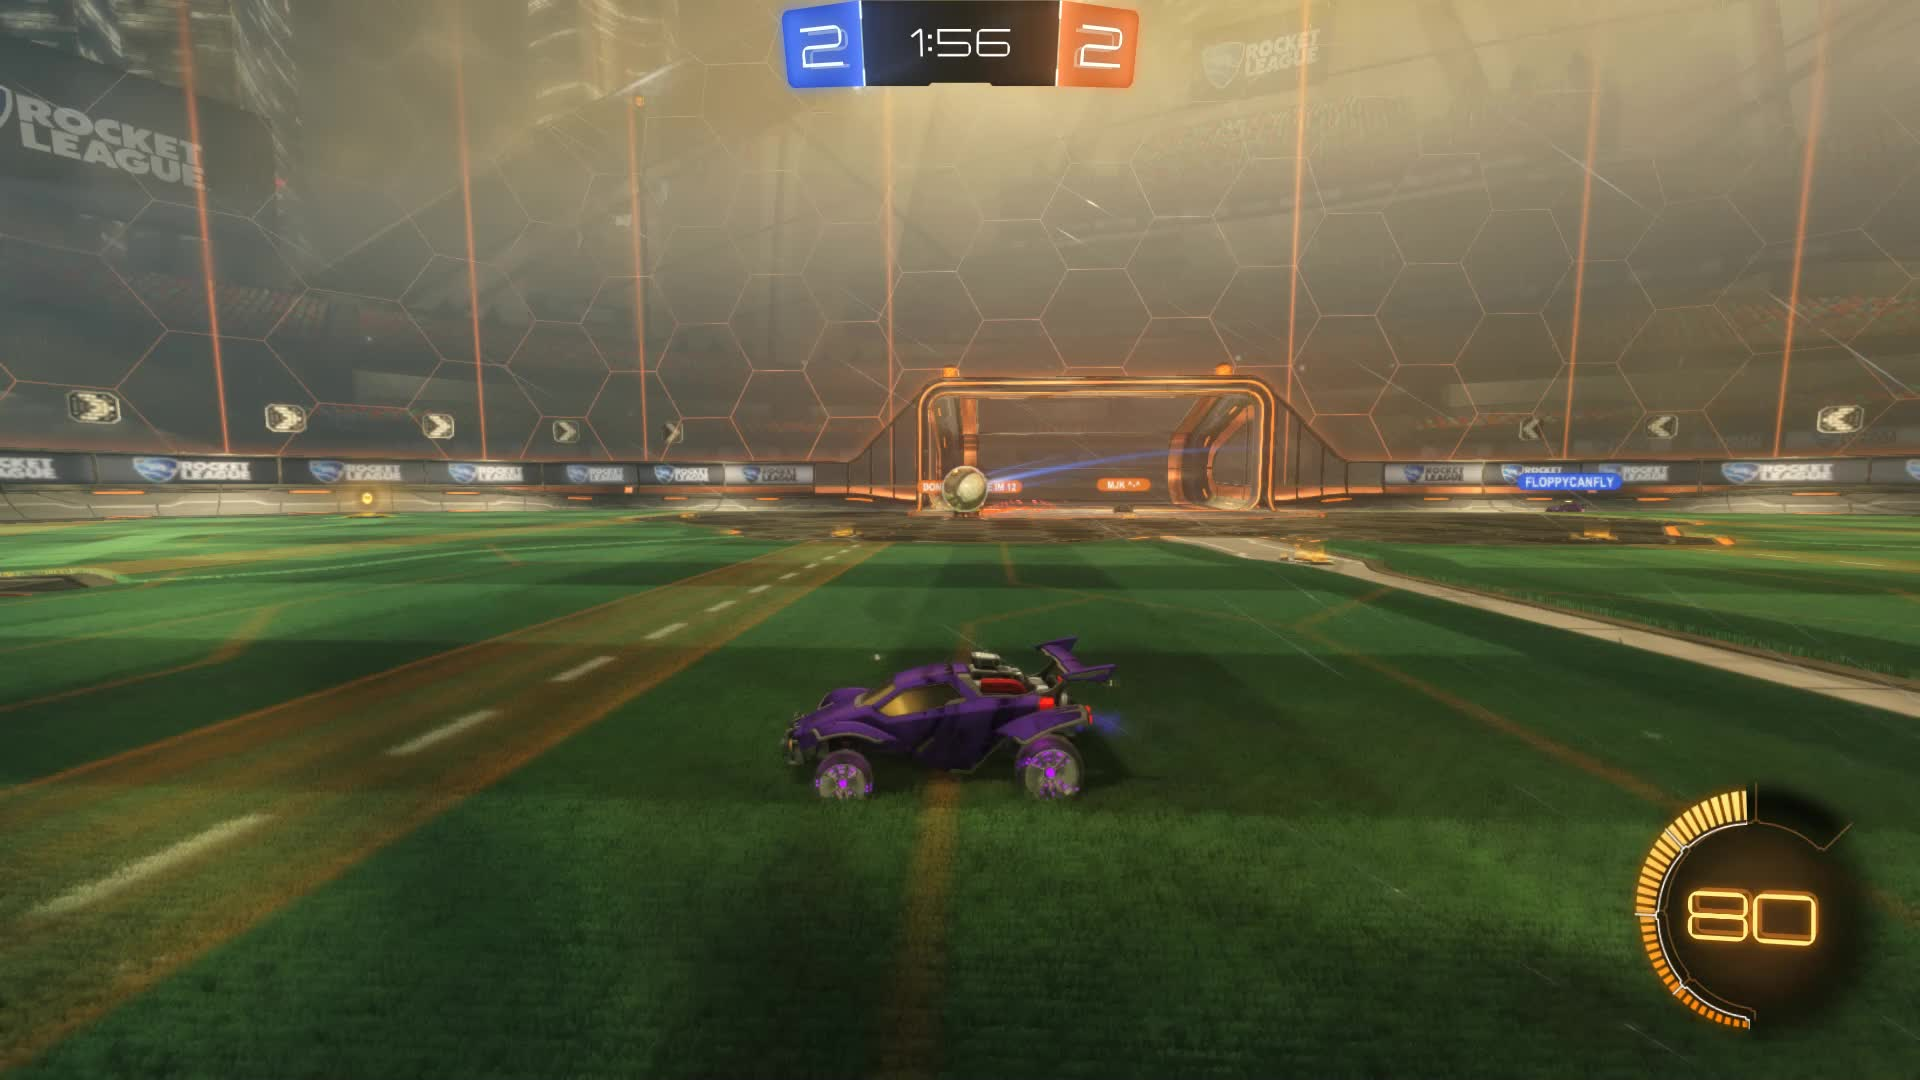 Assist, Gif Your Game, GifYourGame, Ketchup = Bipolar, Rocket League, RocketLeague, Assist 3: Ketchup = Bipolar GIFs